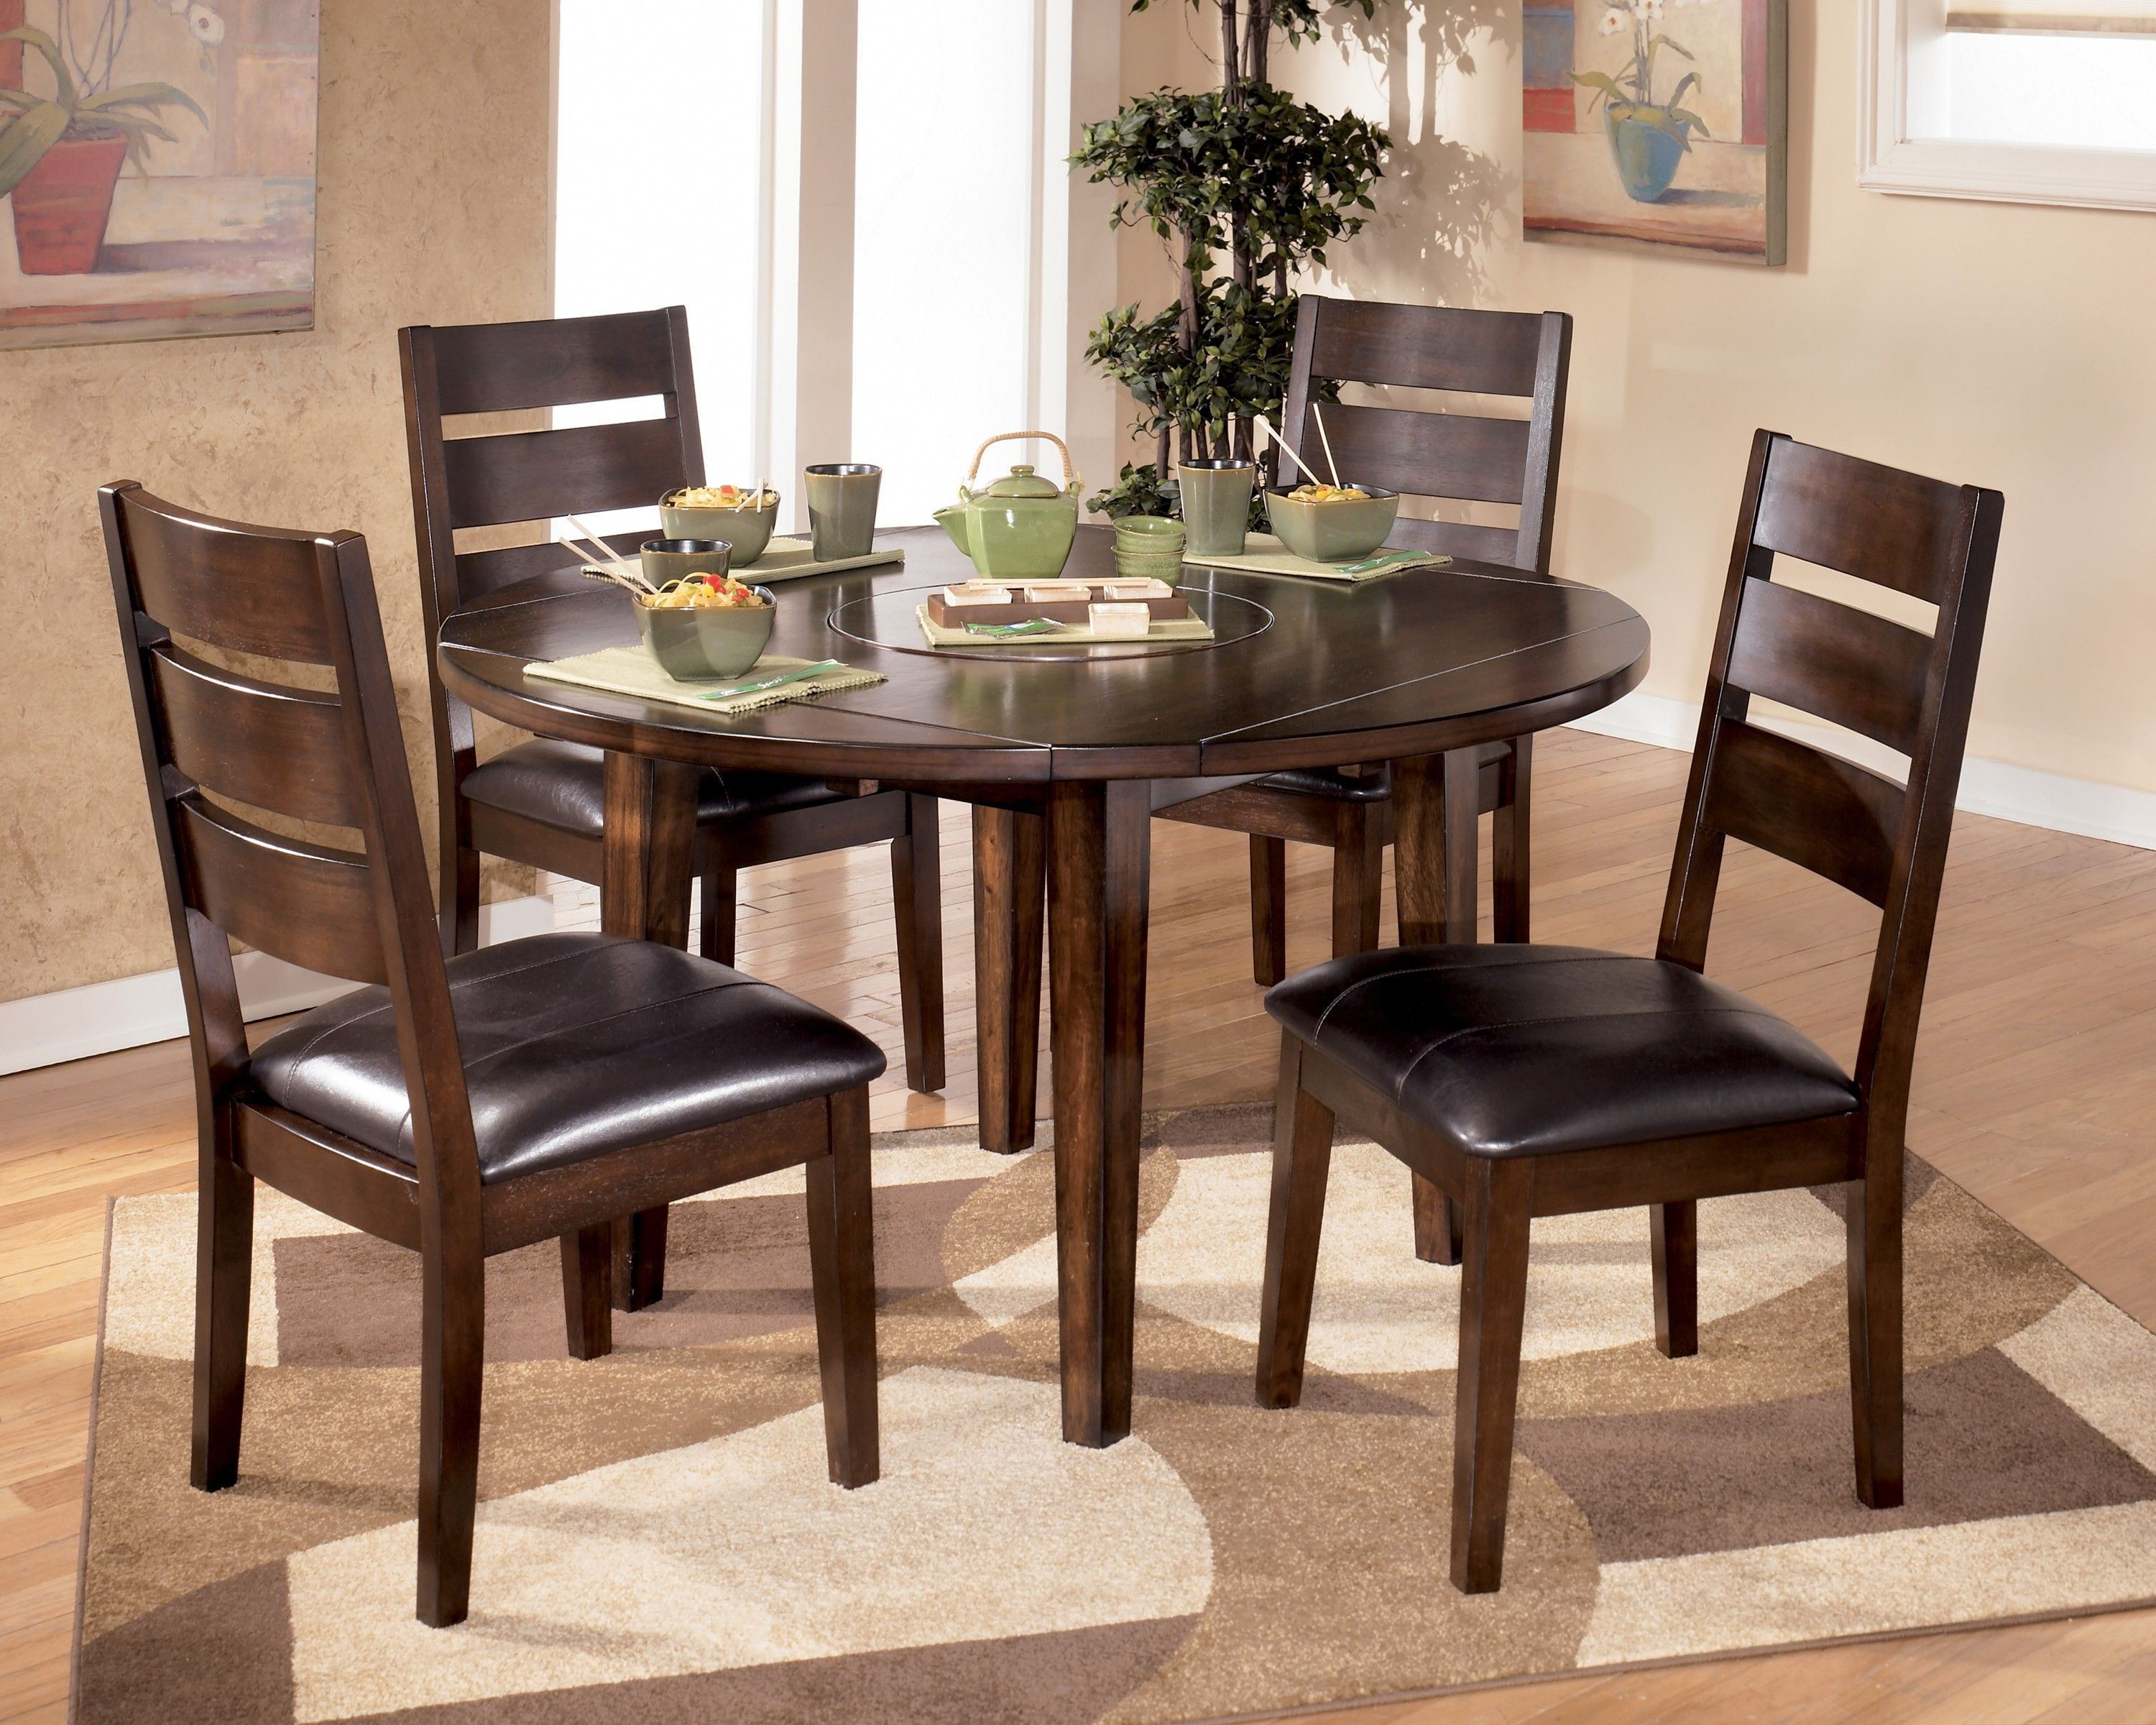 Round Dining Room Table Sets & Round Dining Room Table Sets | Dining Room Table Sets | Pinterest ...